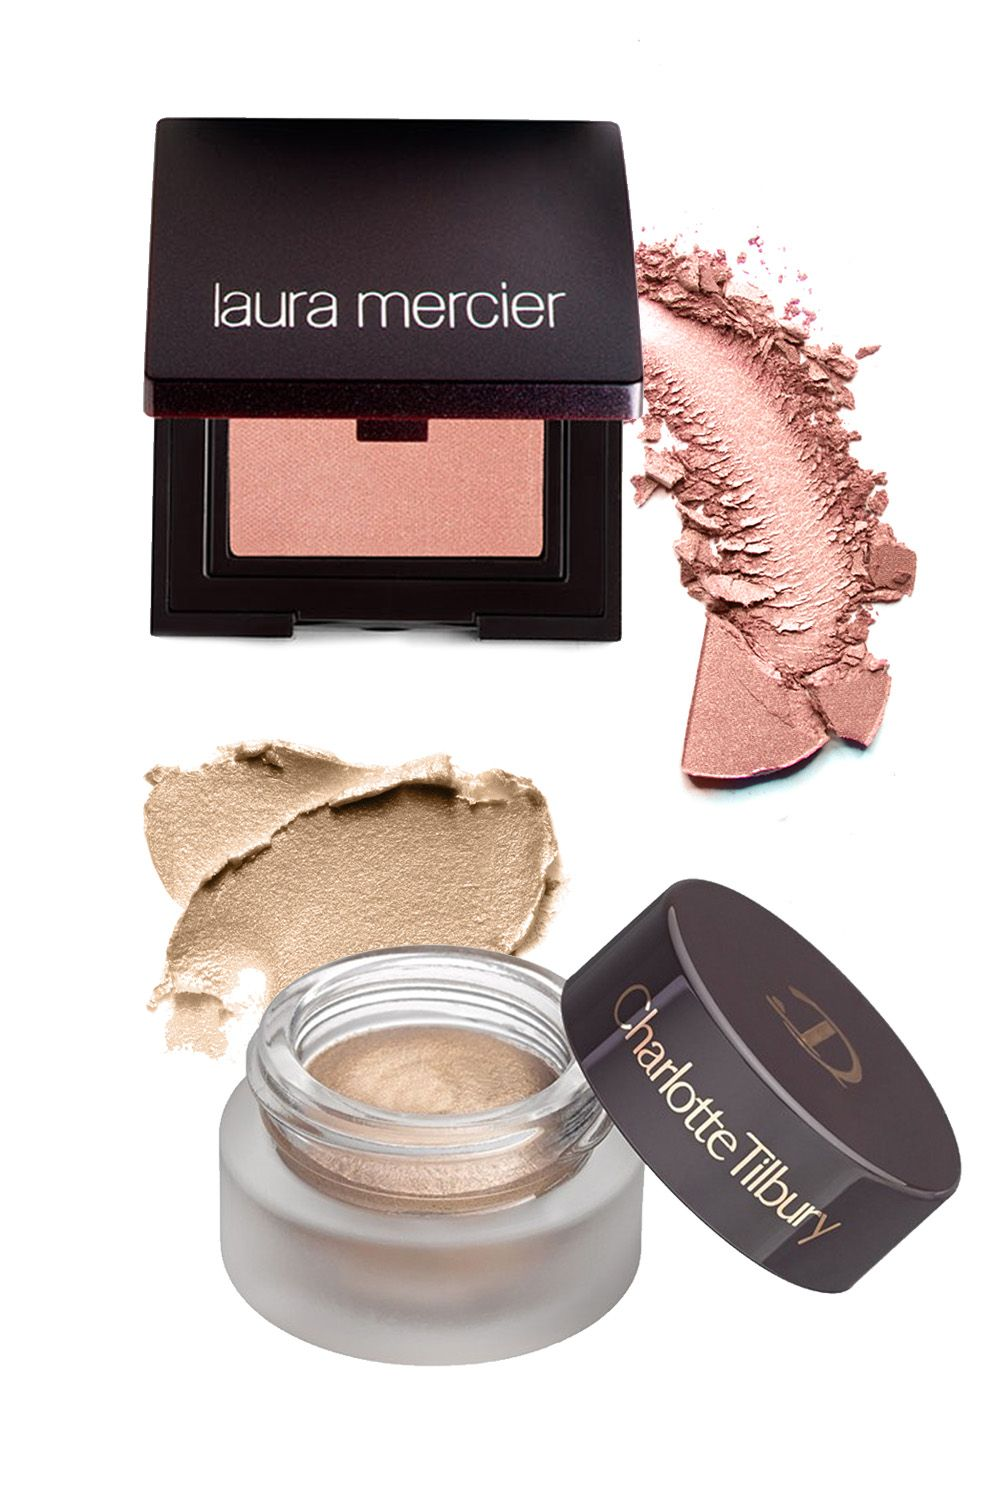 "Laura Mercier Sateen Eye Colour in Primrose, $24; <a target=""_blank"" href=""http://shop.nordstrom.com/s/laura-mercier-sateen-eye-colour/2789466?origin=category-personalizedsort&contextualcategoryid=0&fashionColor=&resultback=7029"">Nordstrom.com</a>  Charlotte Tilbury Eyes to Mesmerise Cream Eyeshadow in Marie Antoinette, $32; <a target=""_blank"" href=""http://shop.nordstrom.com/s/charlotte-tilbury-eyes-to-mesmerise-cream-eyeshadow/4056427?origin=category-personalizedsort&contextualcategoryid=0&fashionColor=Jean&resultback=0"">Nordstrom.com</a>"